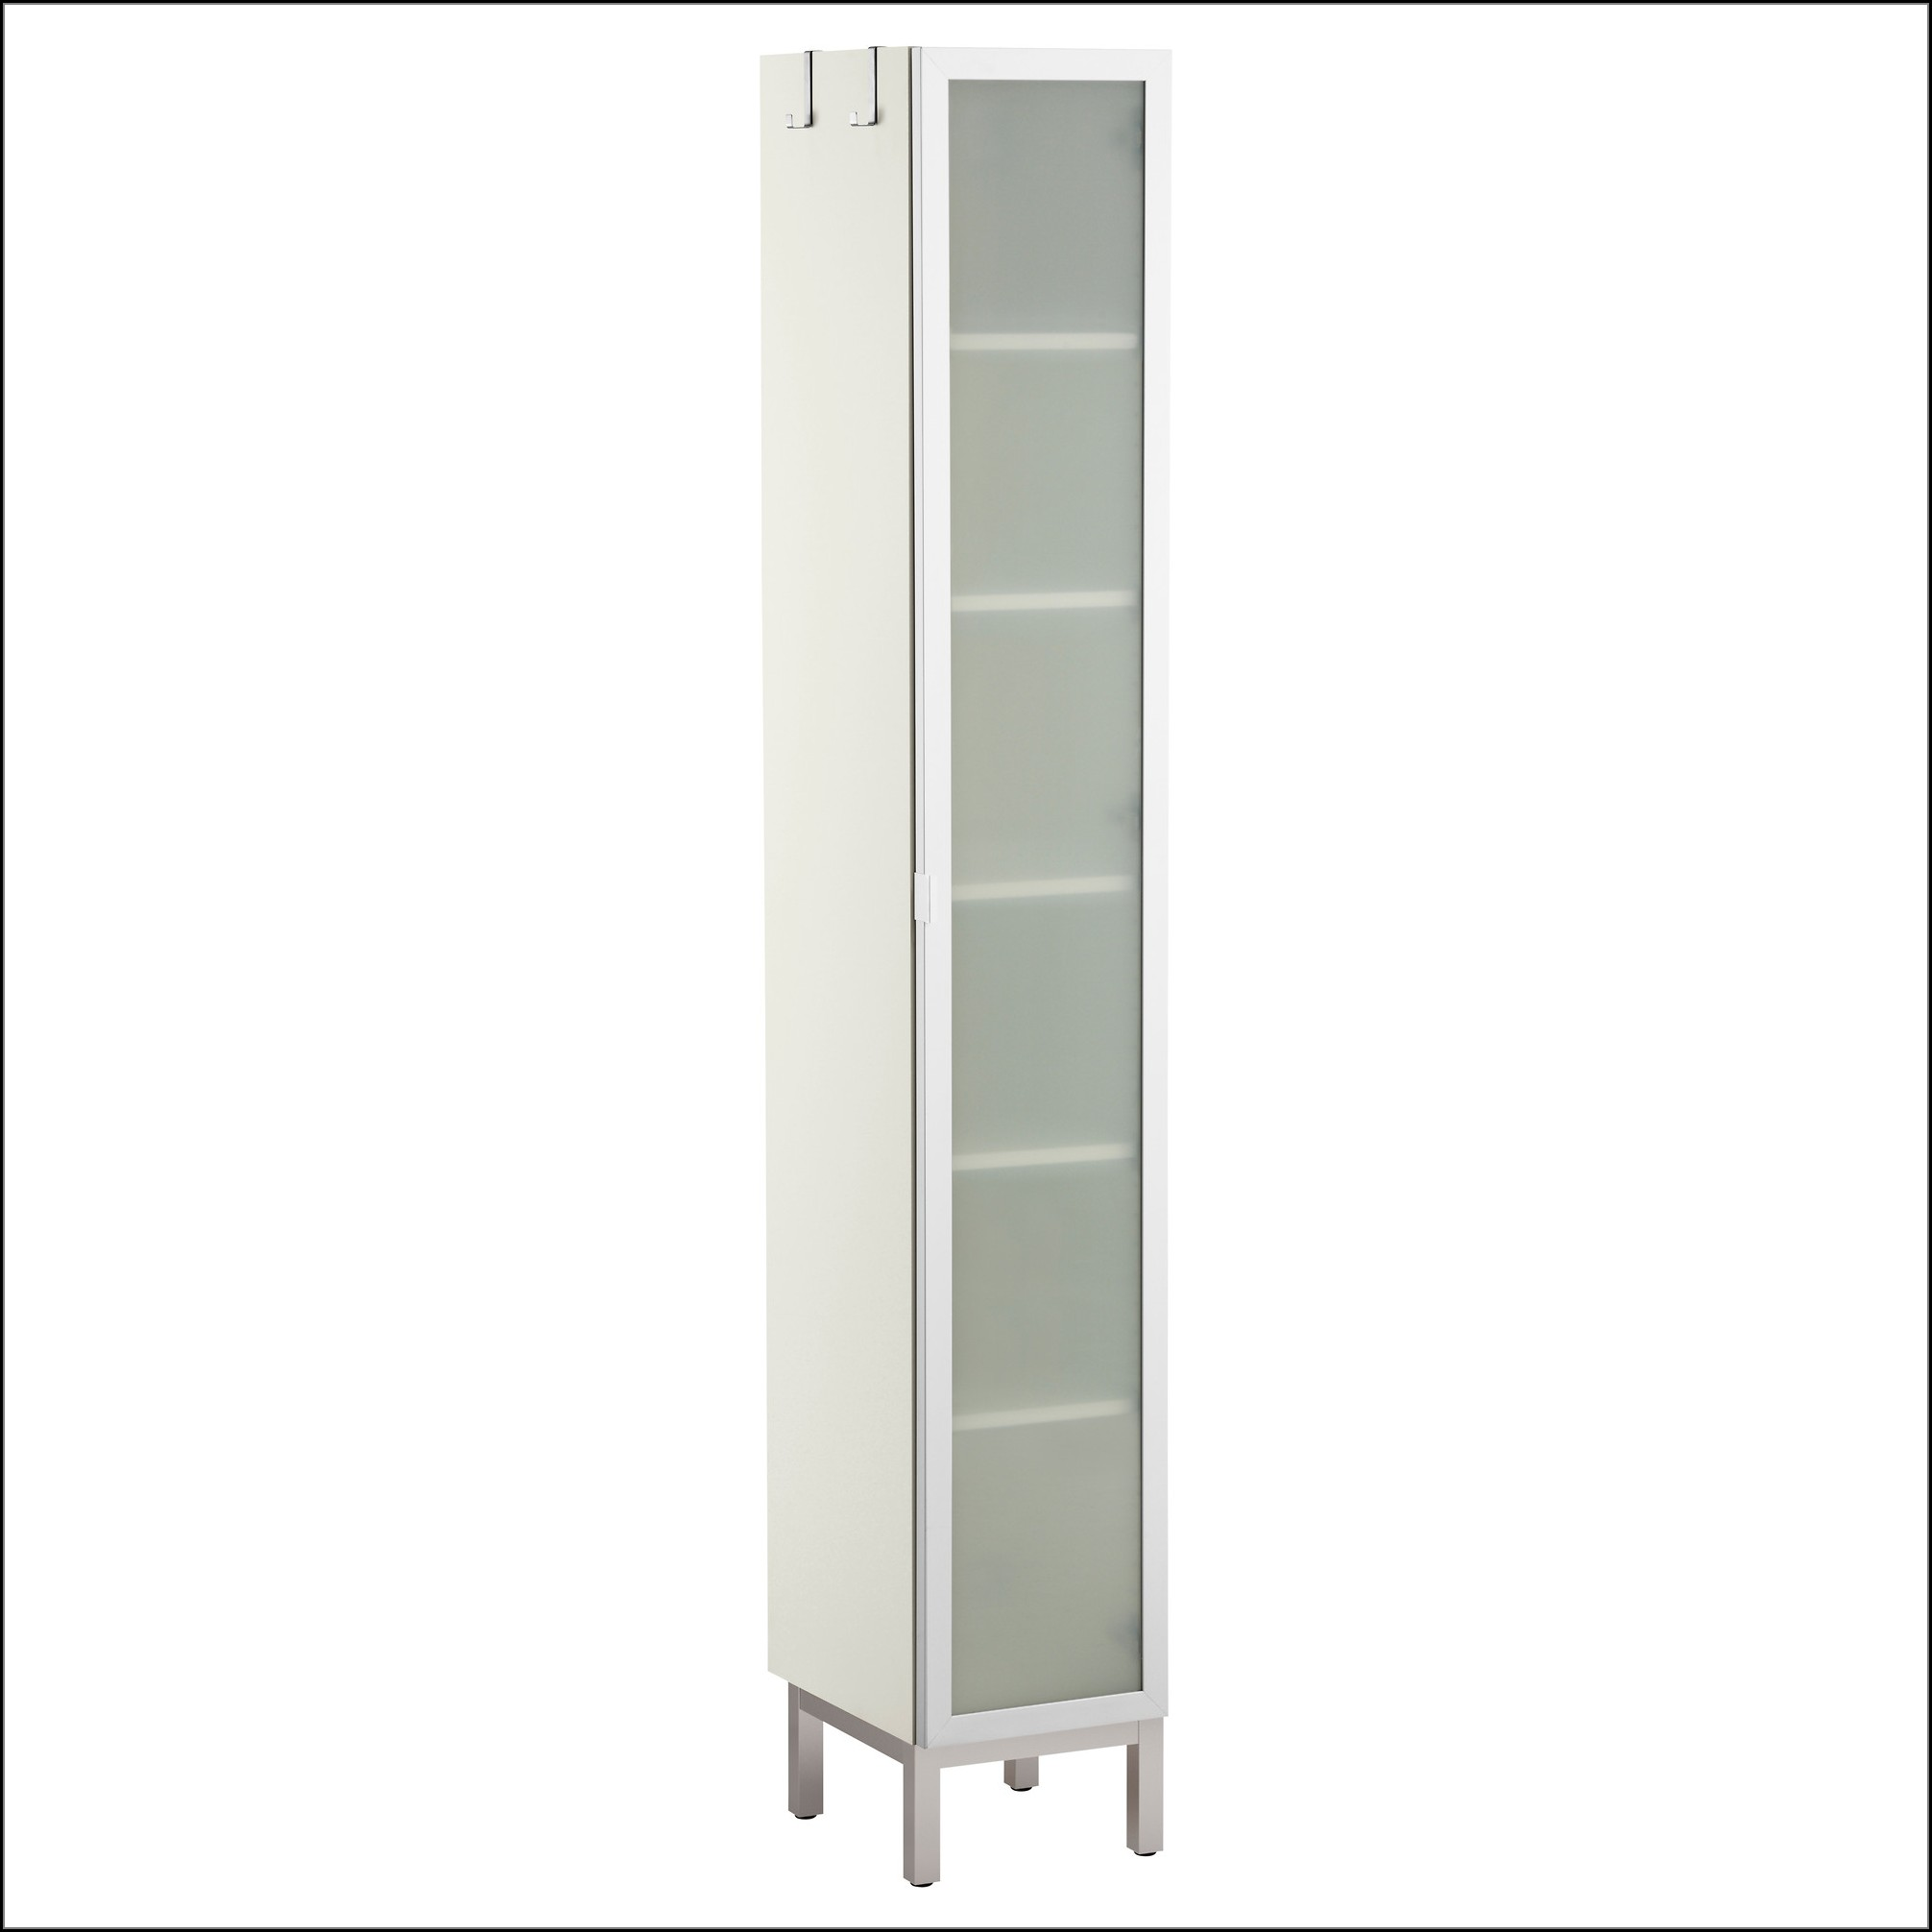 Tall Narrow Storage Cabinets With Doors